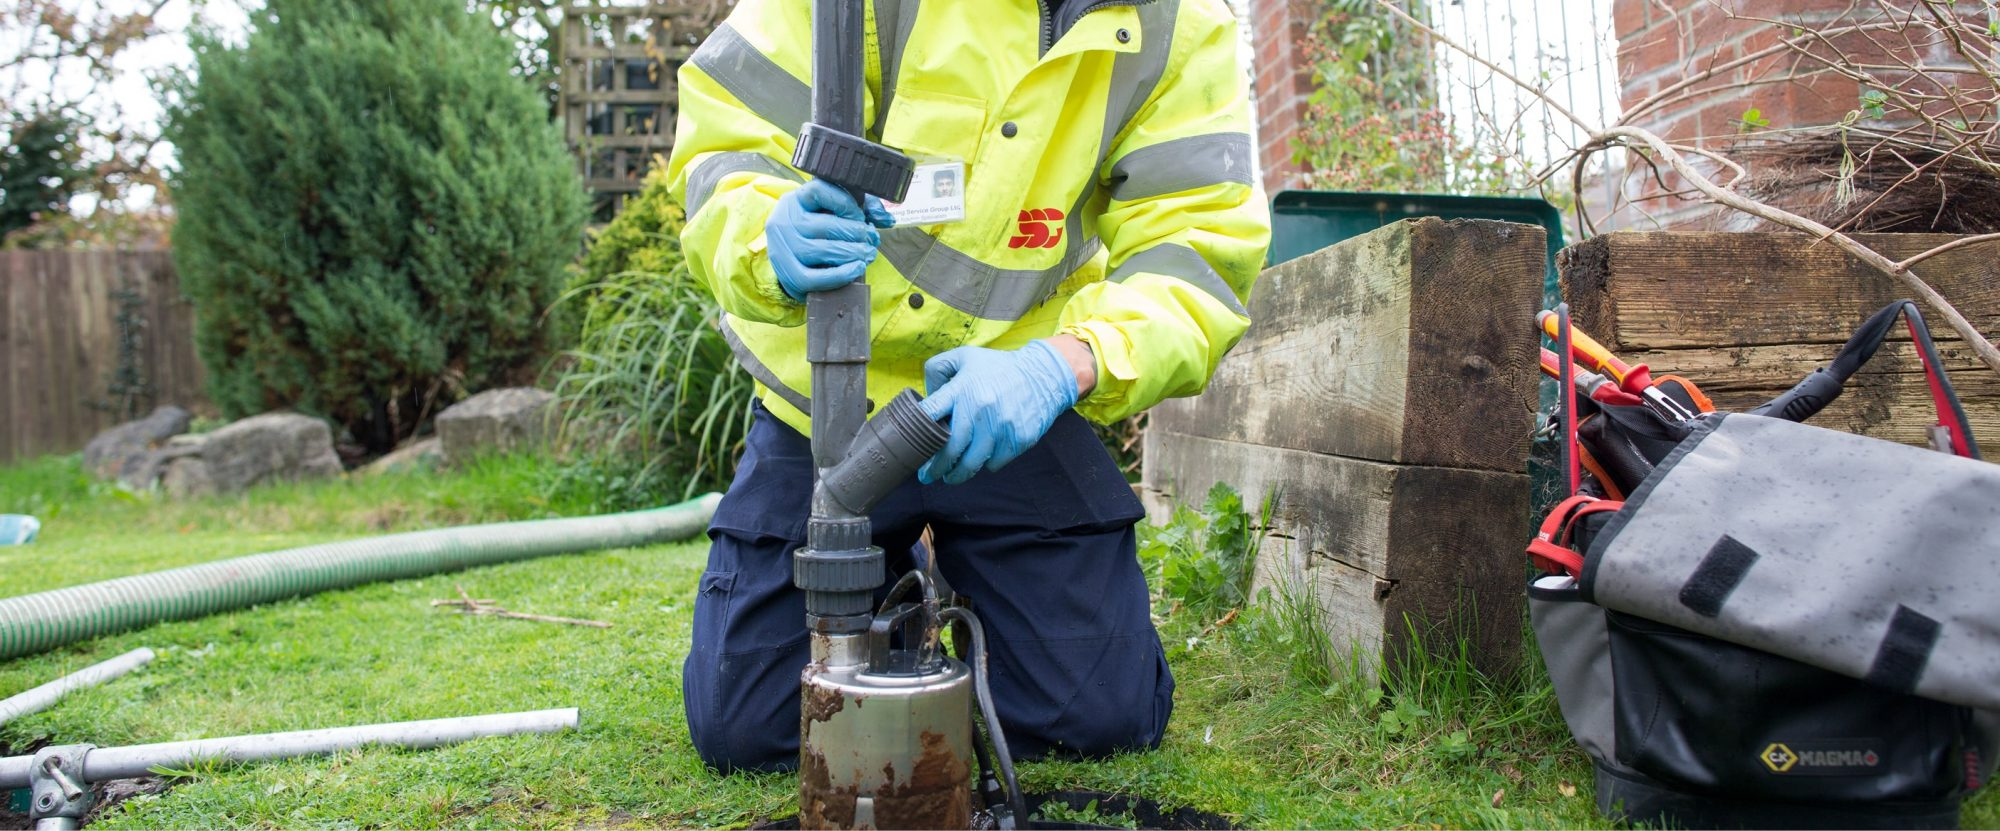 Septic tank pump out near me-Houston TX Septic Tank Pumping, Installation, & Repairs-We offer Septic Service & Repairs, Septic Tank Installations, Septic Tank Cleaning, Commercial, Septic System, Drain Cleaning, Line Snaking, Portable Toilet, Grease Trap Pumping & Cleaning, Septic Tank Pumping, Sewage Pump, Sewer Line Repair, Septic Tank Replacement, Septic Maintenance, Sewer Line Replacement, Porta Potty Rentals, and more.